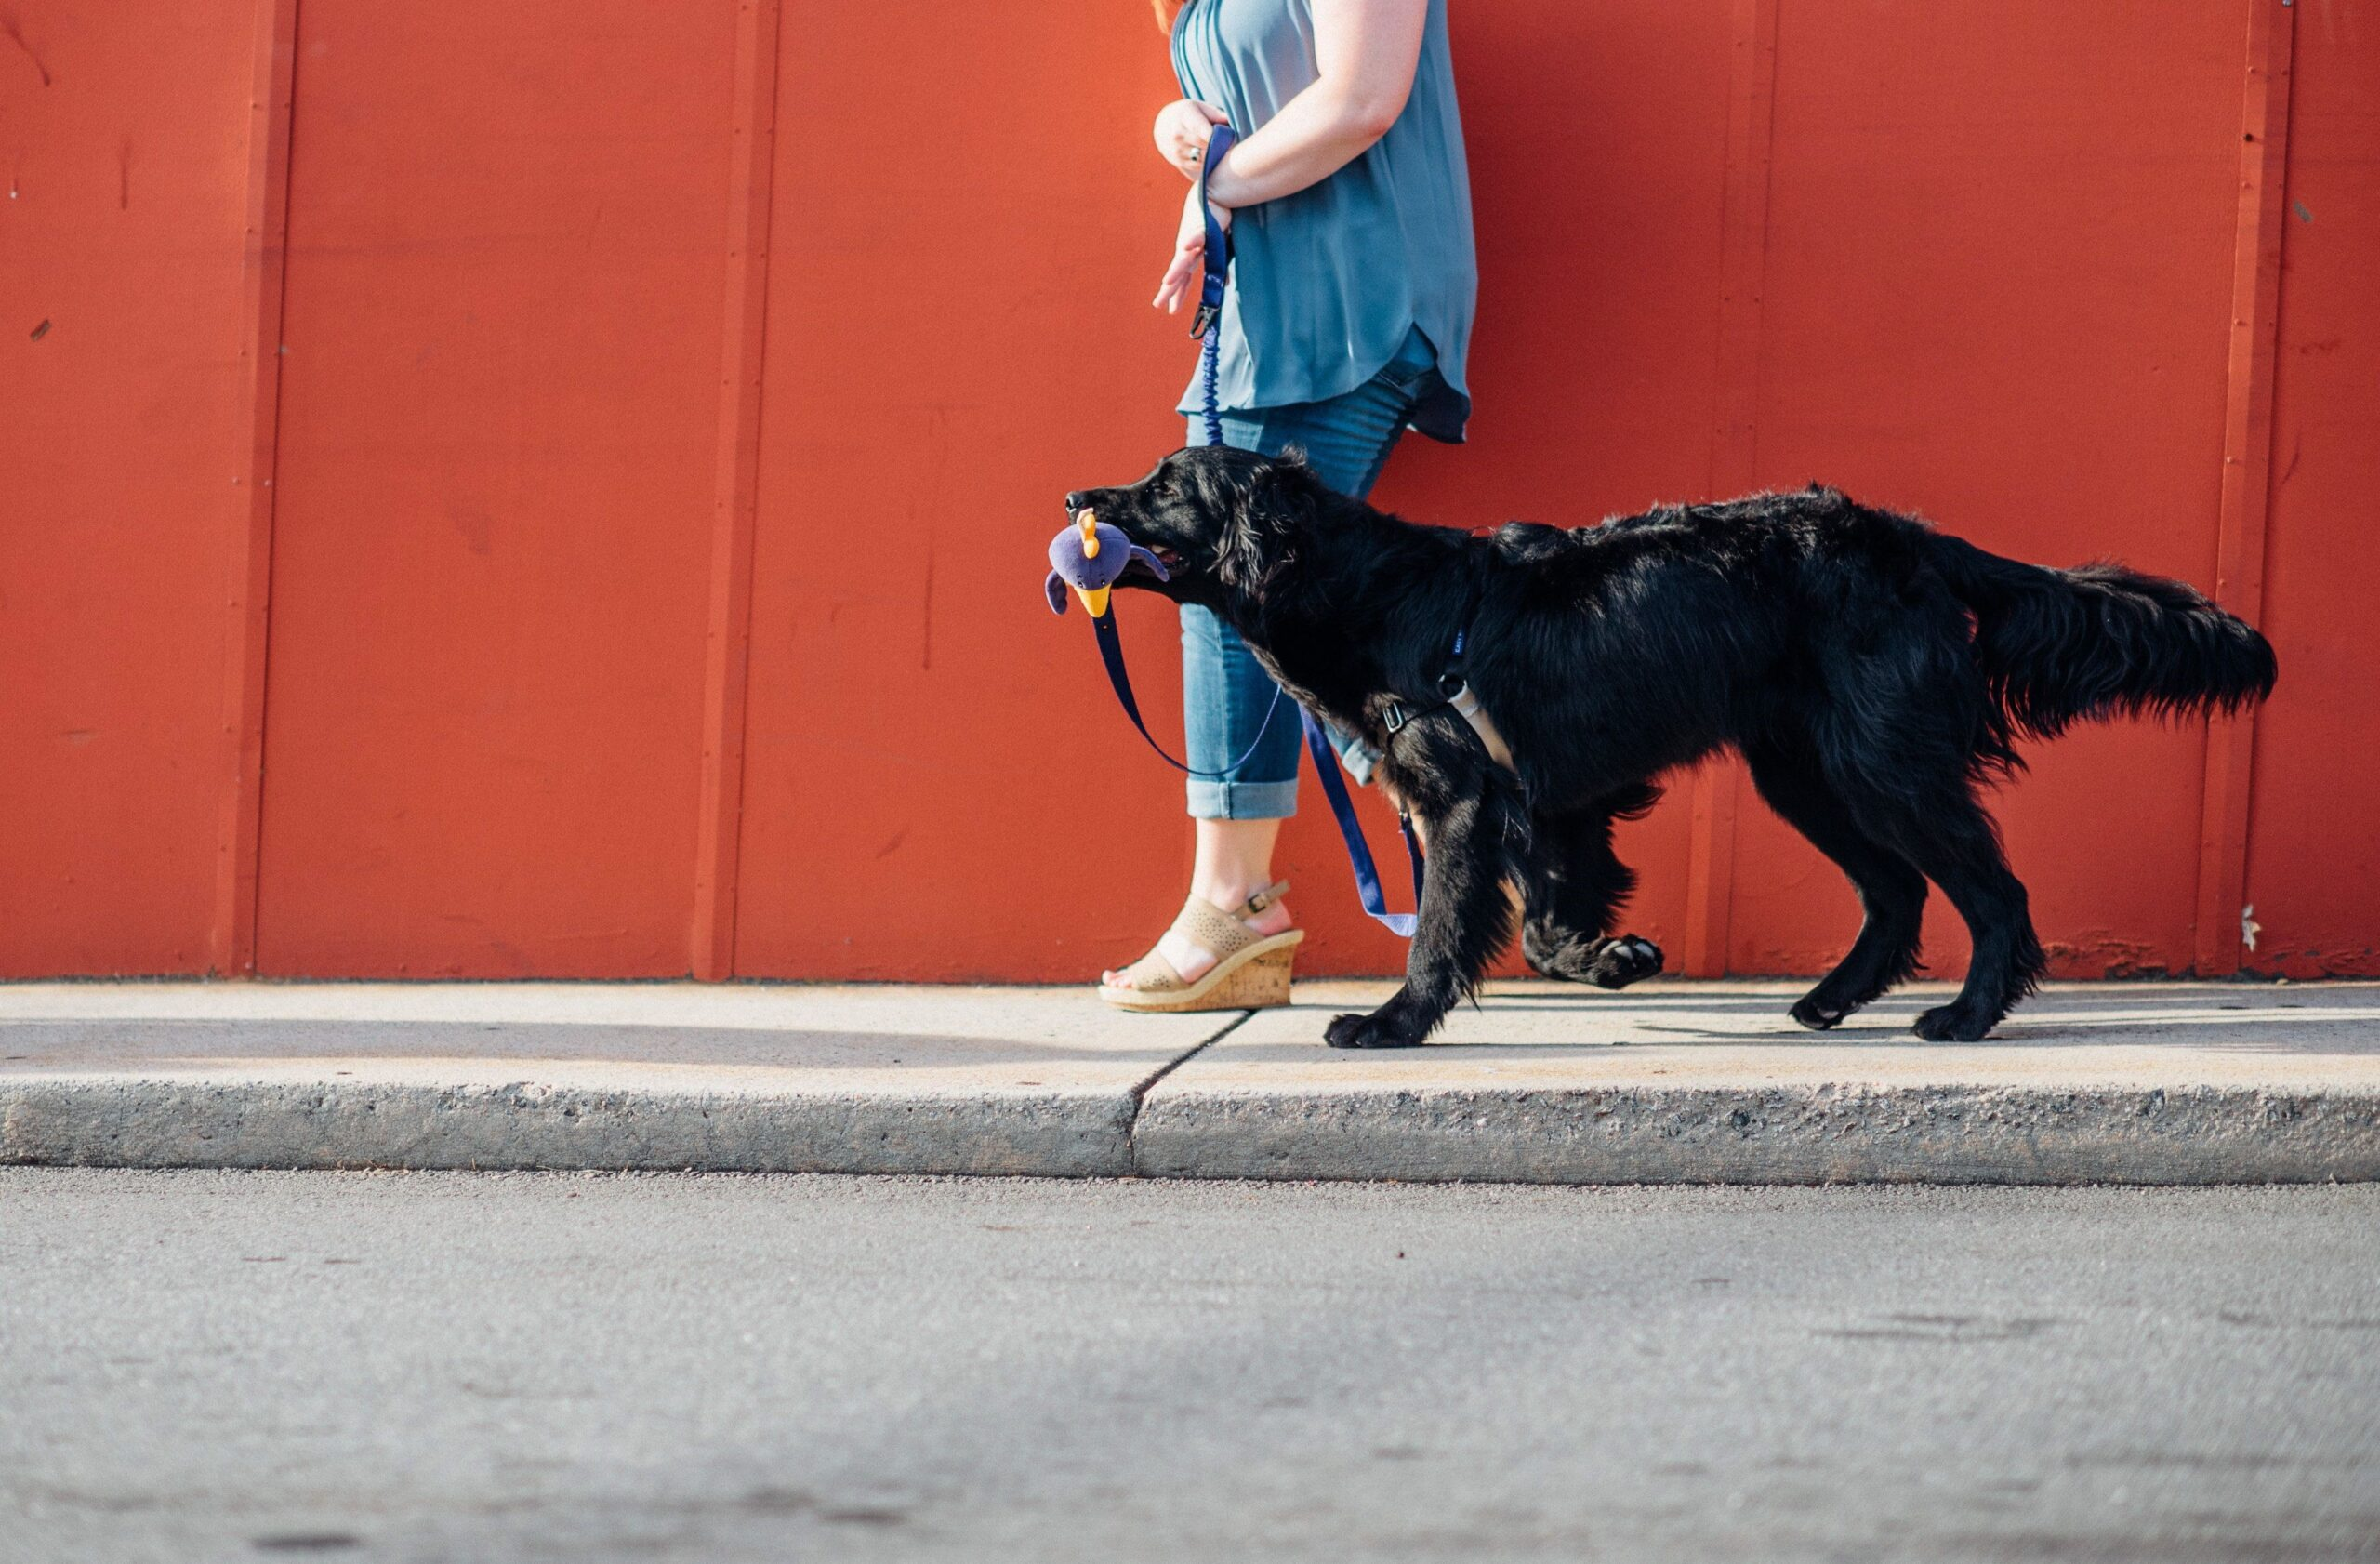 'We Leash' two way dog lead which has handle for owner and handle for dog, Georgia, USA – Oct 2016